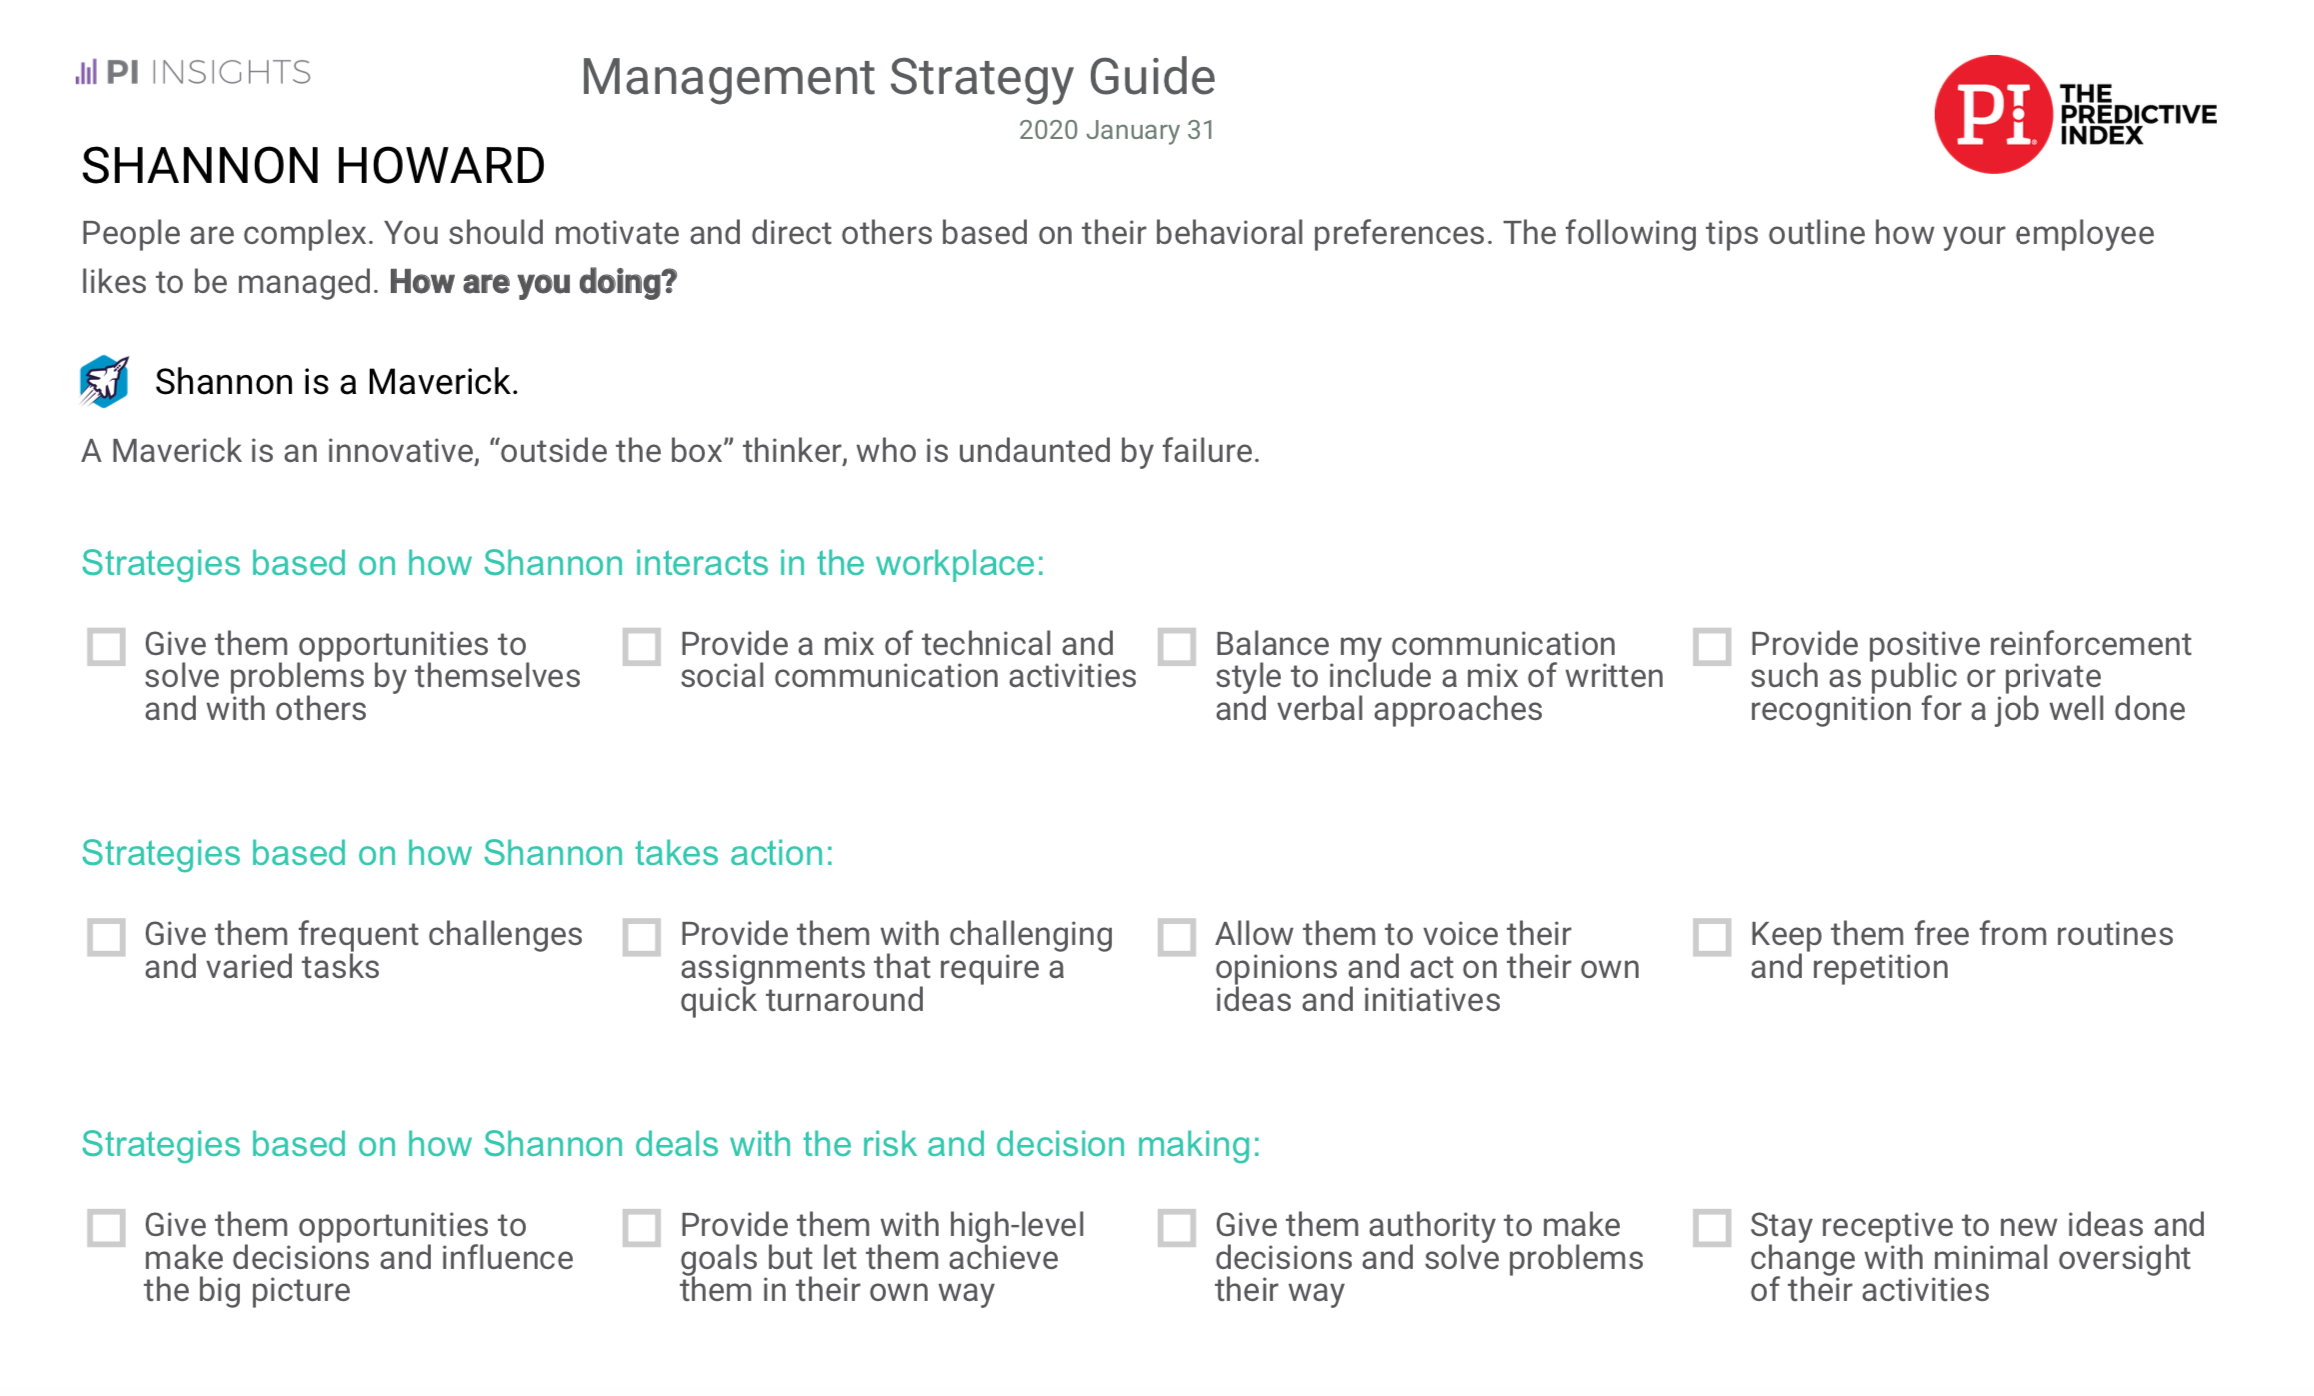 Management Strategy Guide example